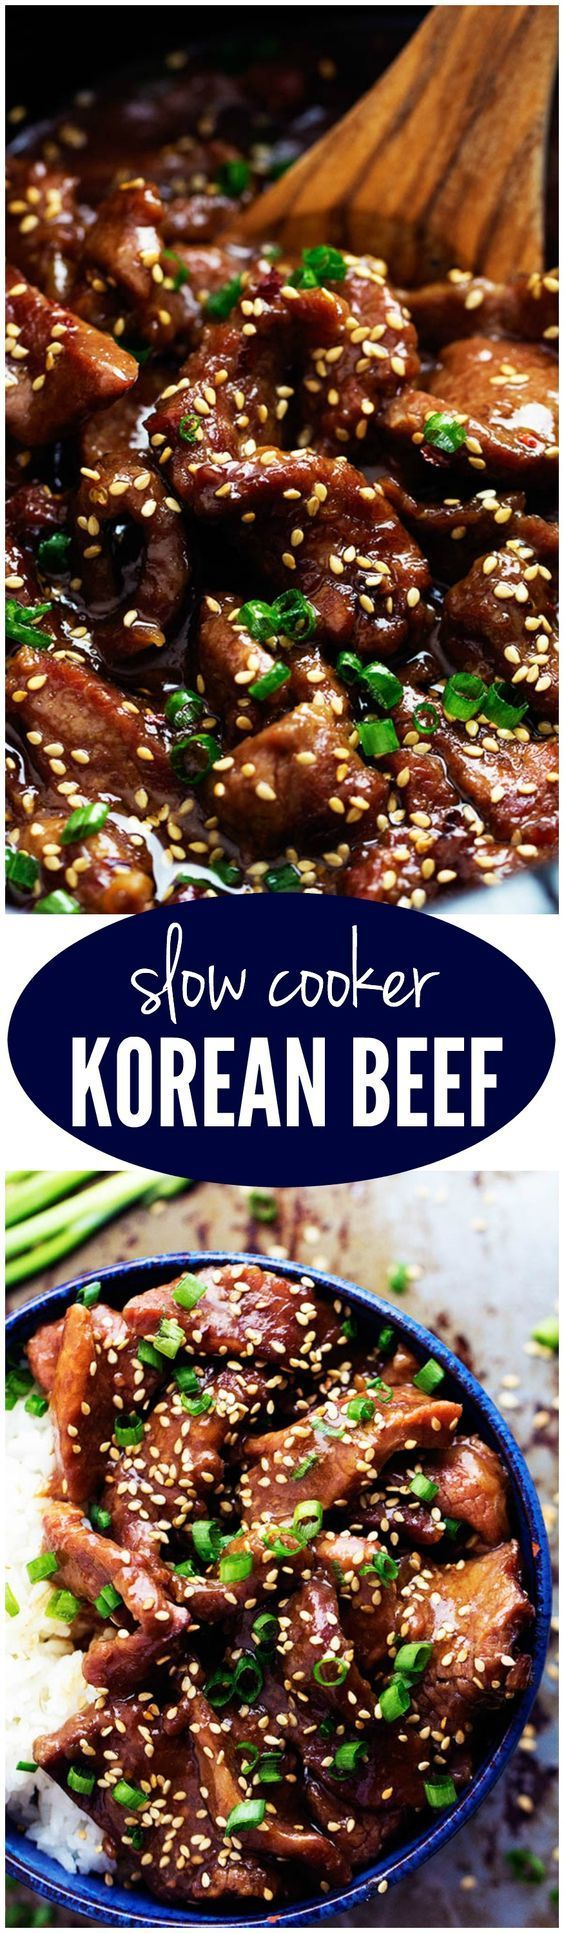 Amazing and flavorful beef that slow cooks to tender melt in your mouth perfection! This will be one of the best meals that you will make!: